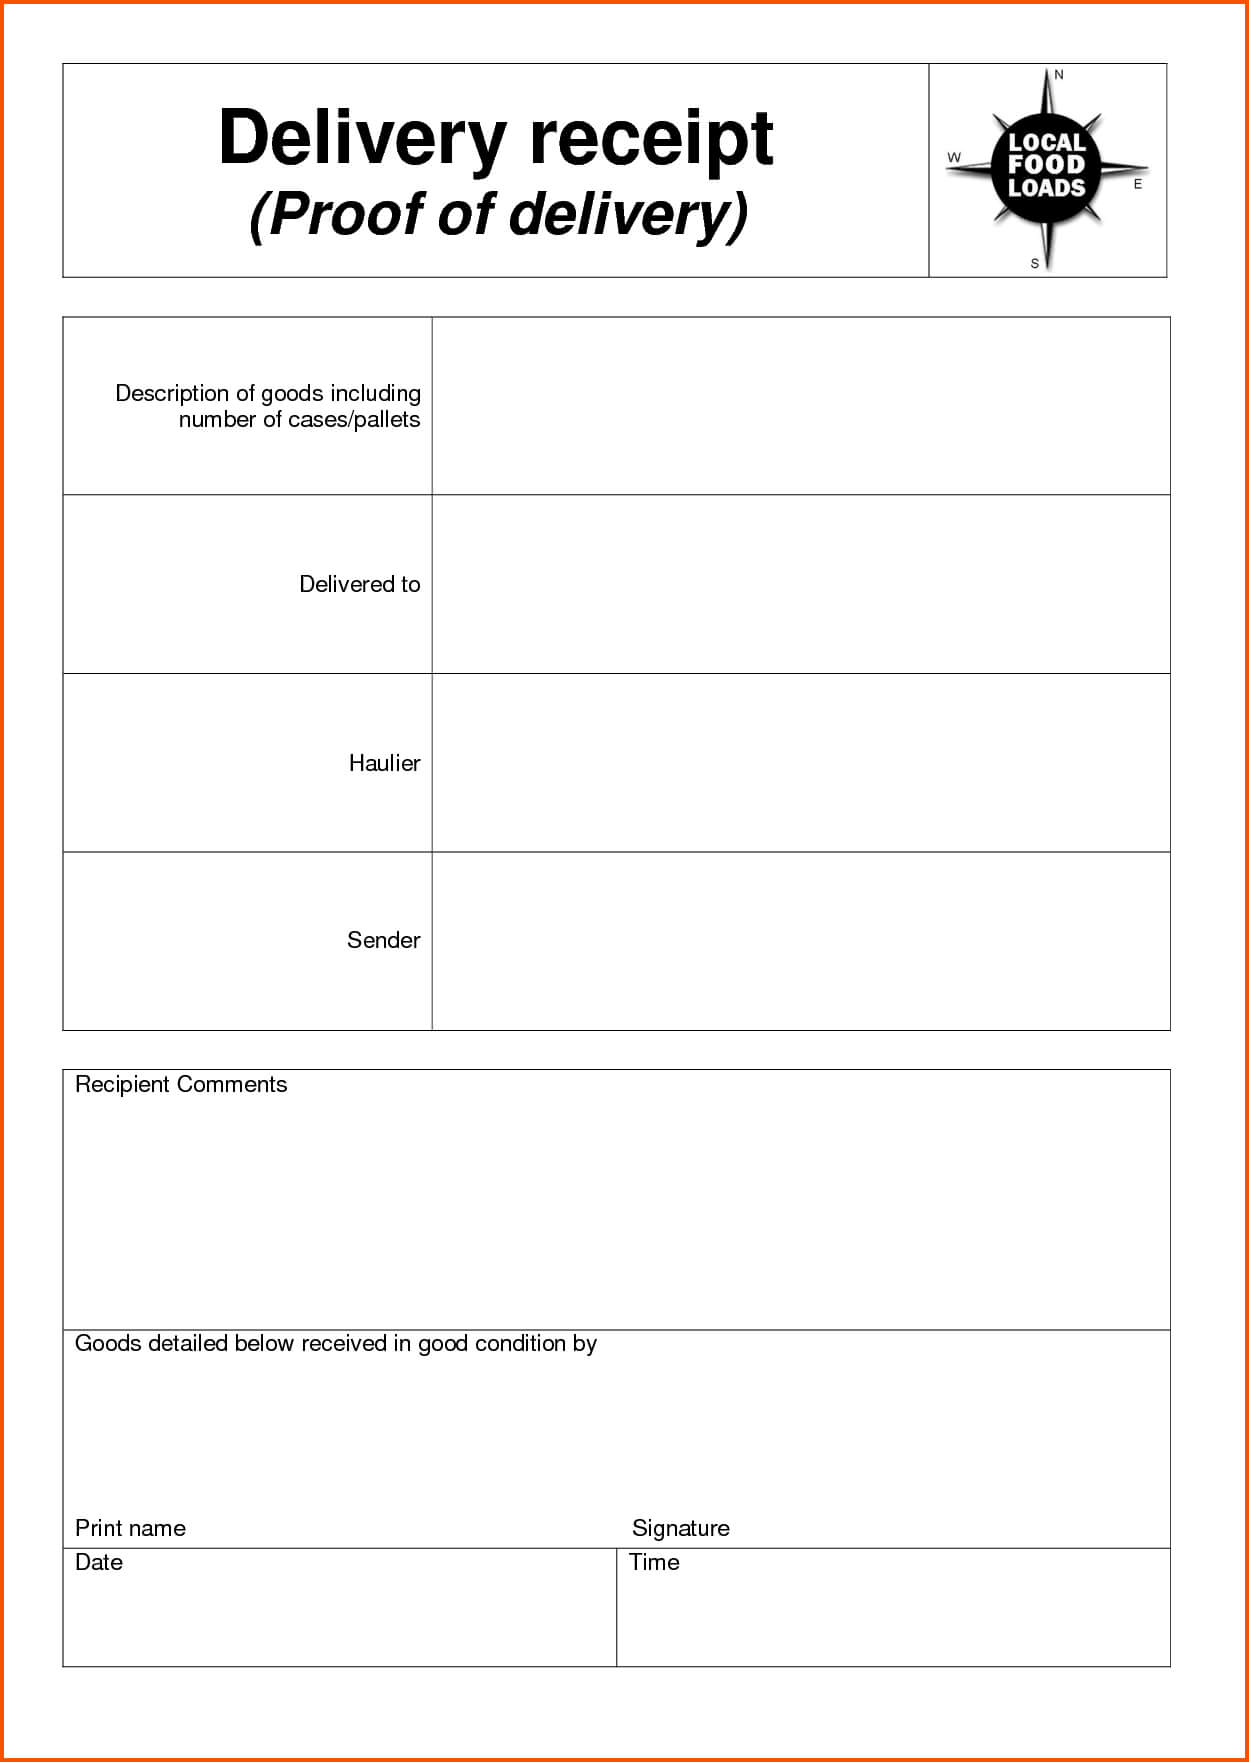 Delivery Document Receipt Template Sample As A Proof Of Pertaining To Proof Of Delivery Template Word